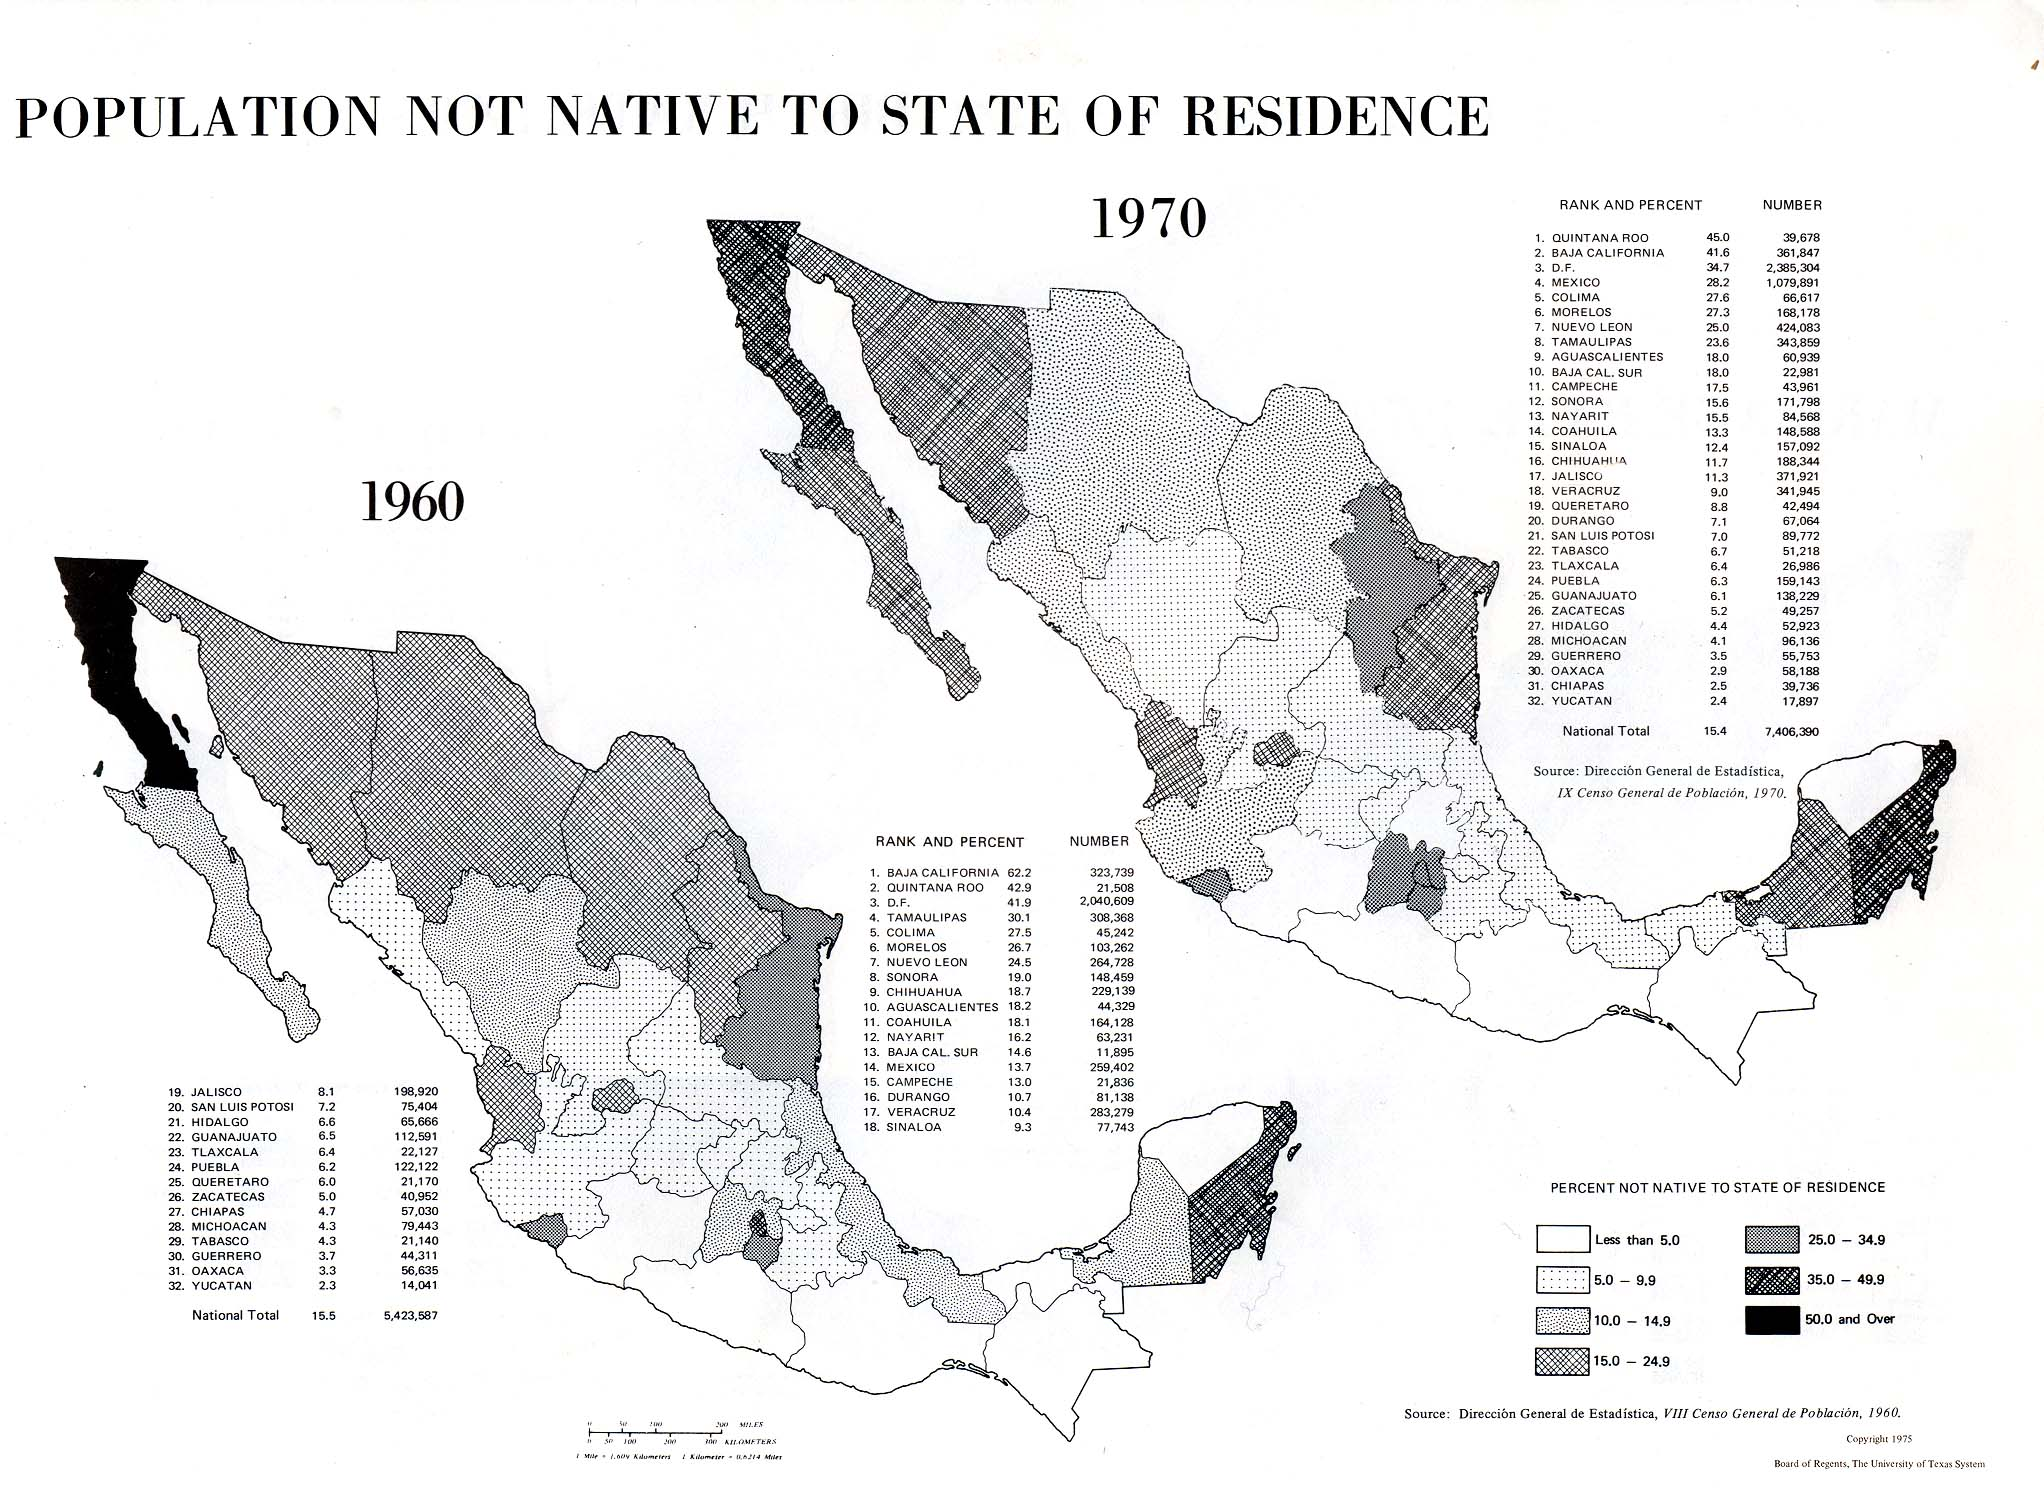 Map of Population Not Native to State of Residence, Mexico